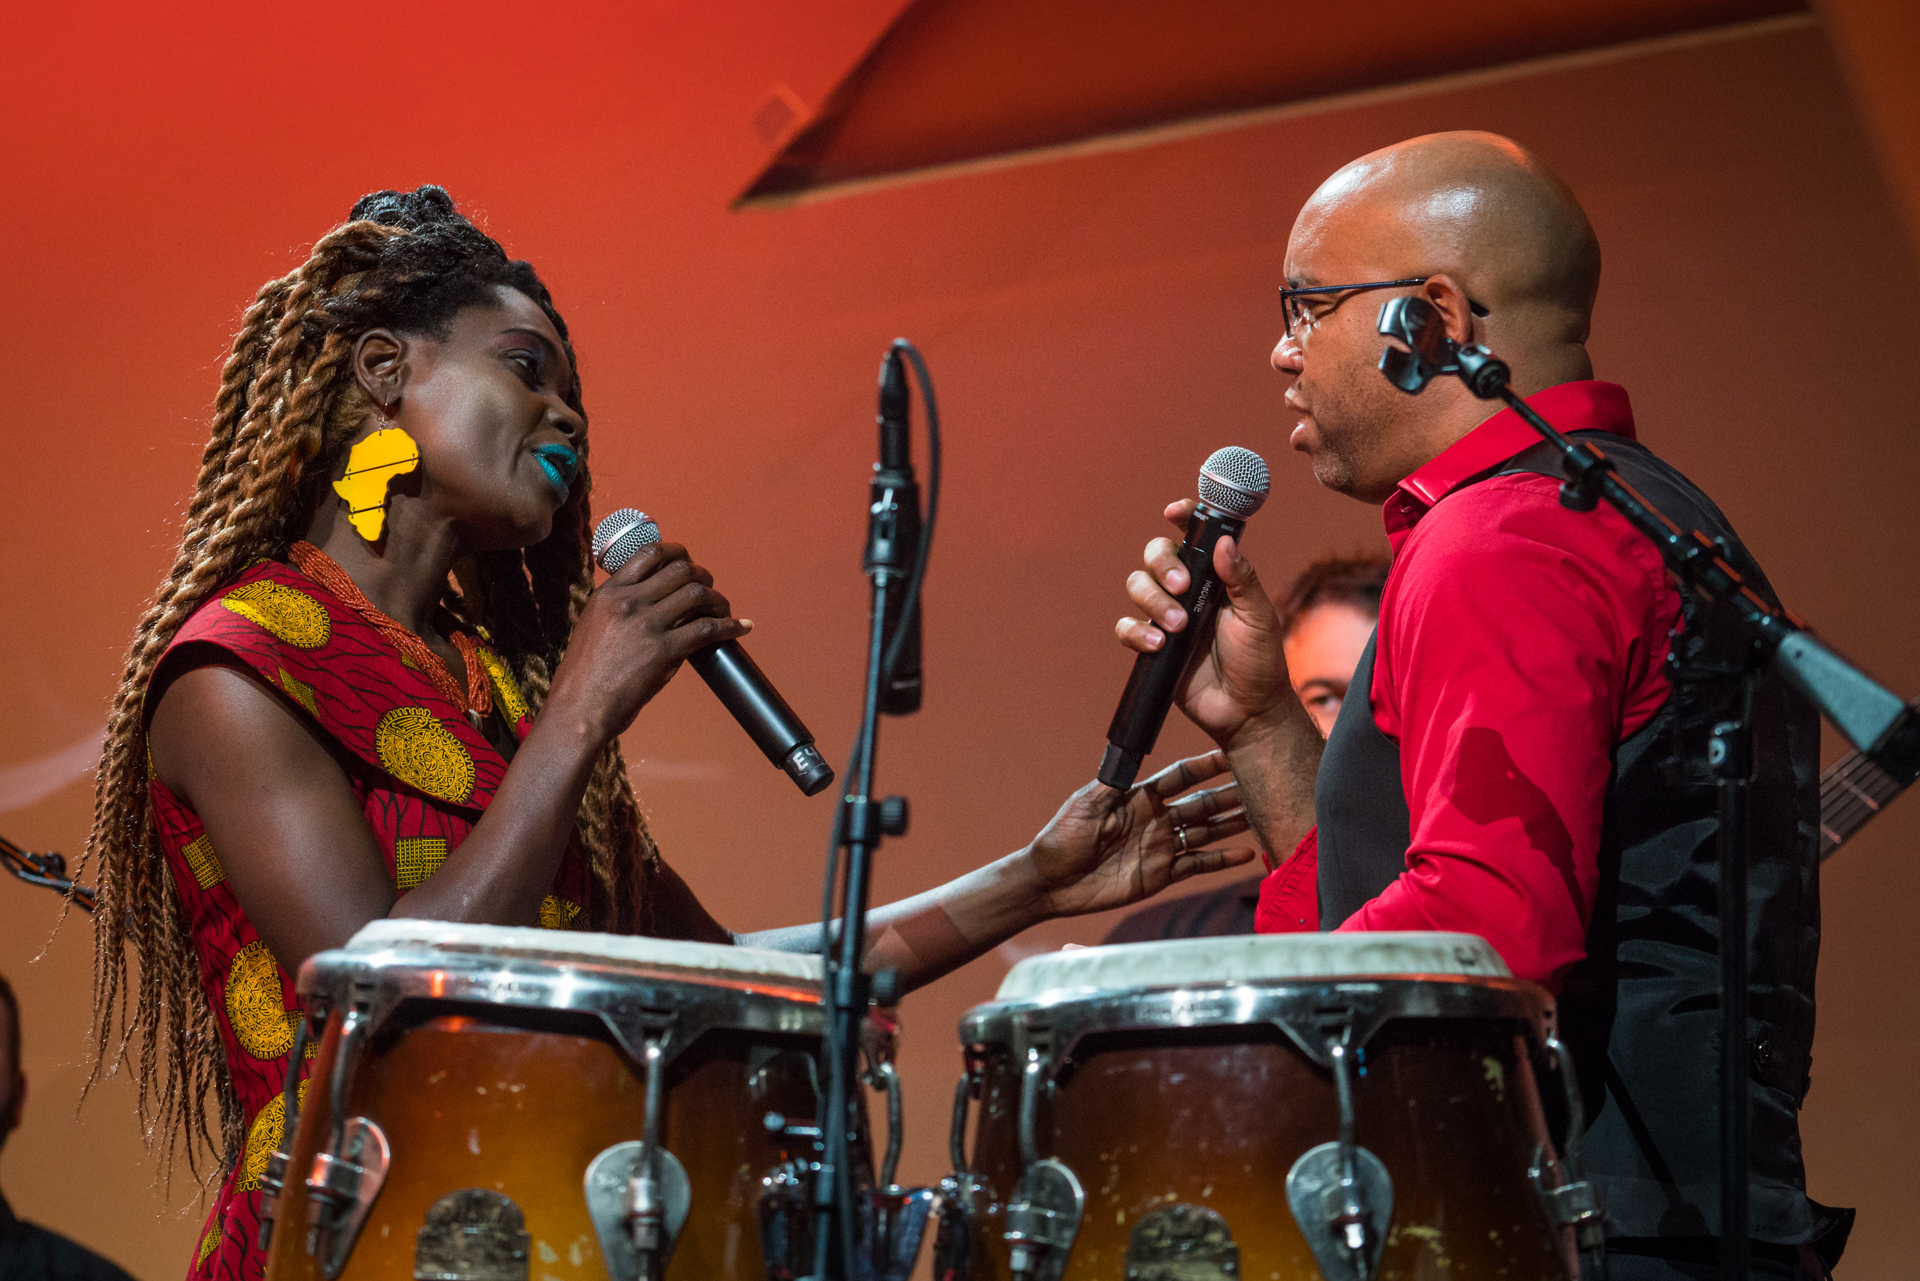 Fred Clarke and Wobby World performing at TED@IBM salon - Spark, November 16, 2016, San Francisco Jazz, San Francisco, California. Photo: Russell Edwards/TED